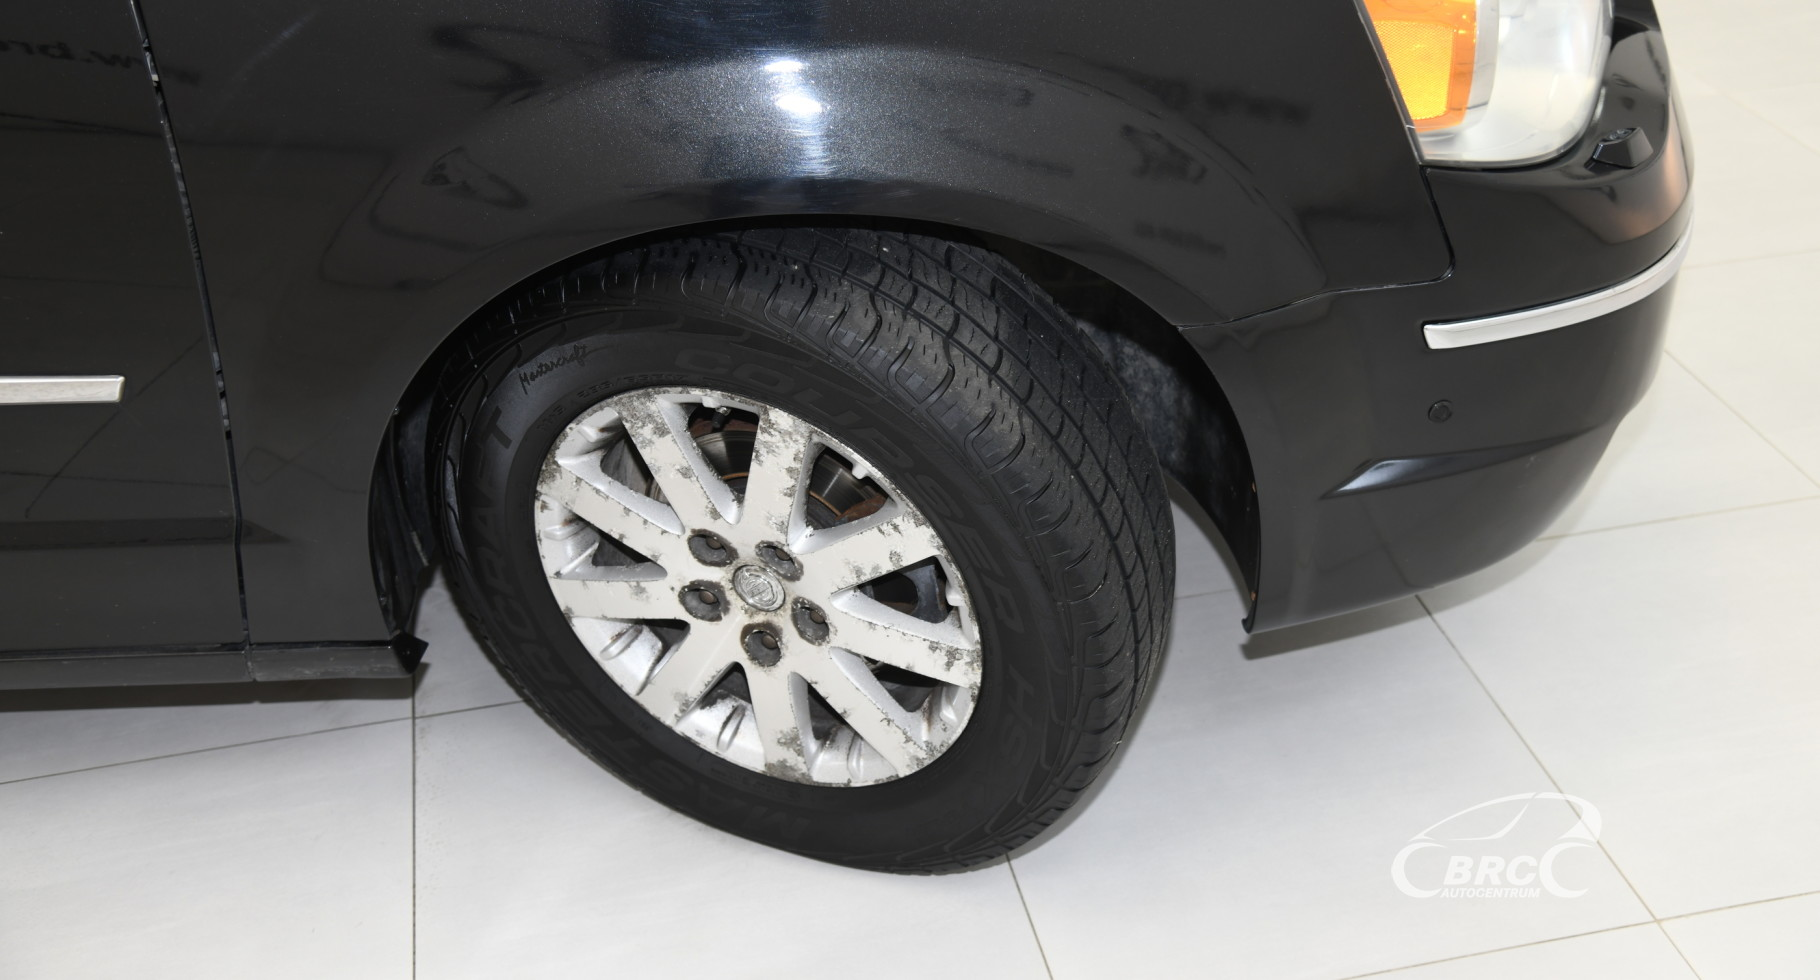 Chrysler Grand Voyager 2.8 CRD Limited Automatas